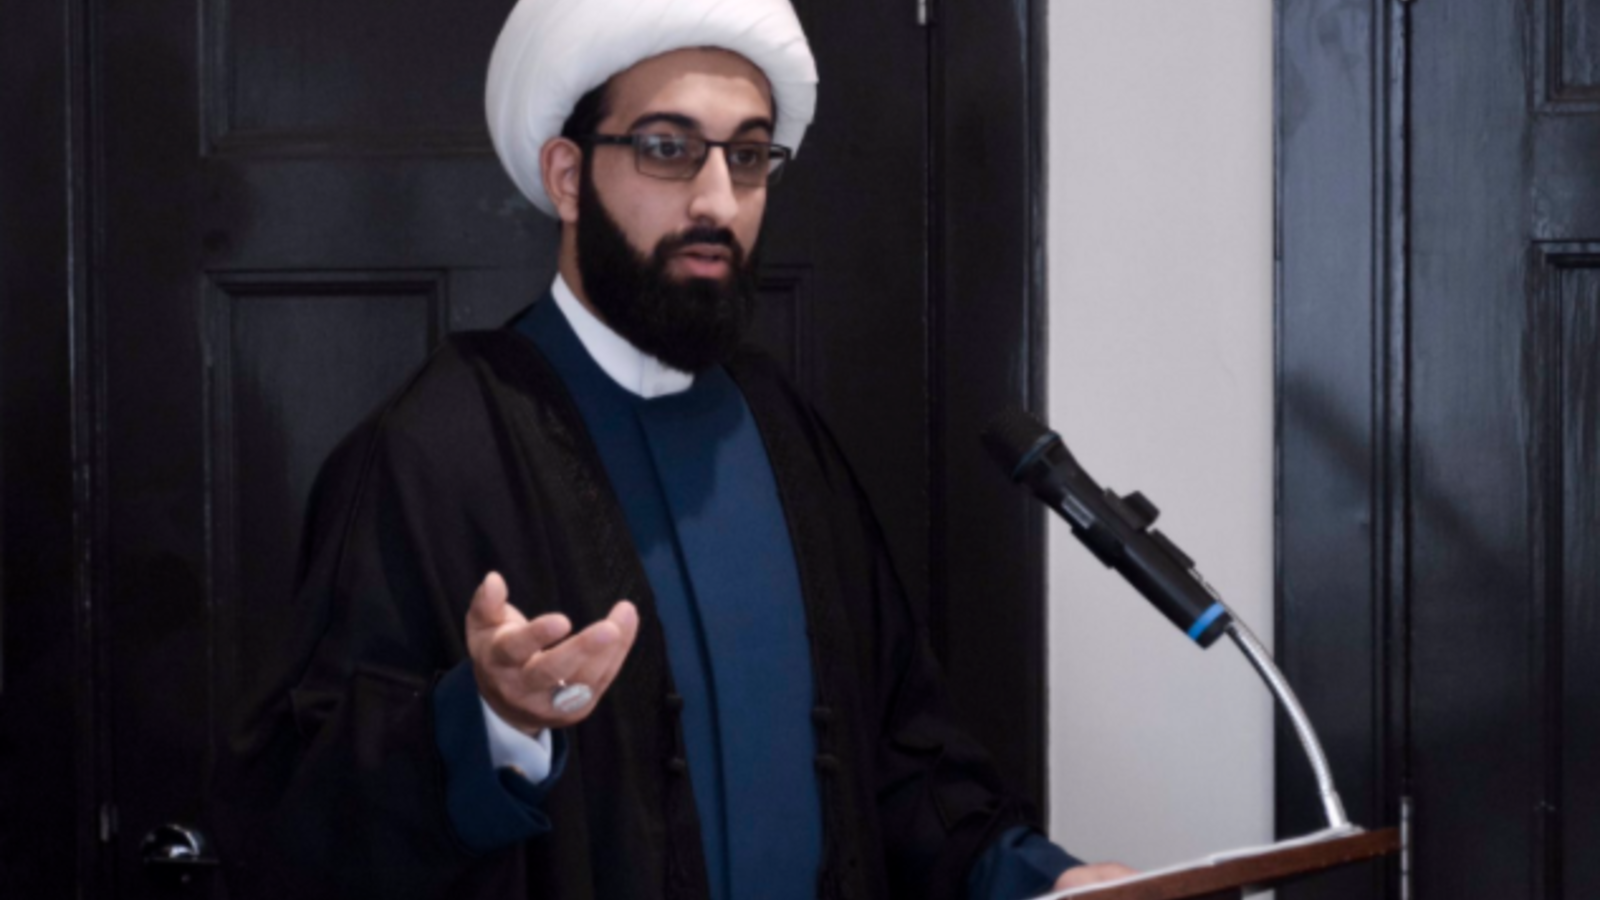 Imam Tawhidi is a controversial figure, yet his message of reform and peace has resonated with many. (Pic: Twitter @Imamofpeace)